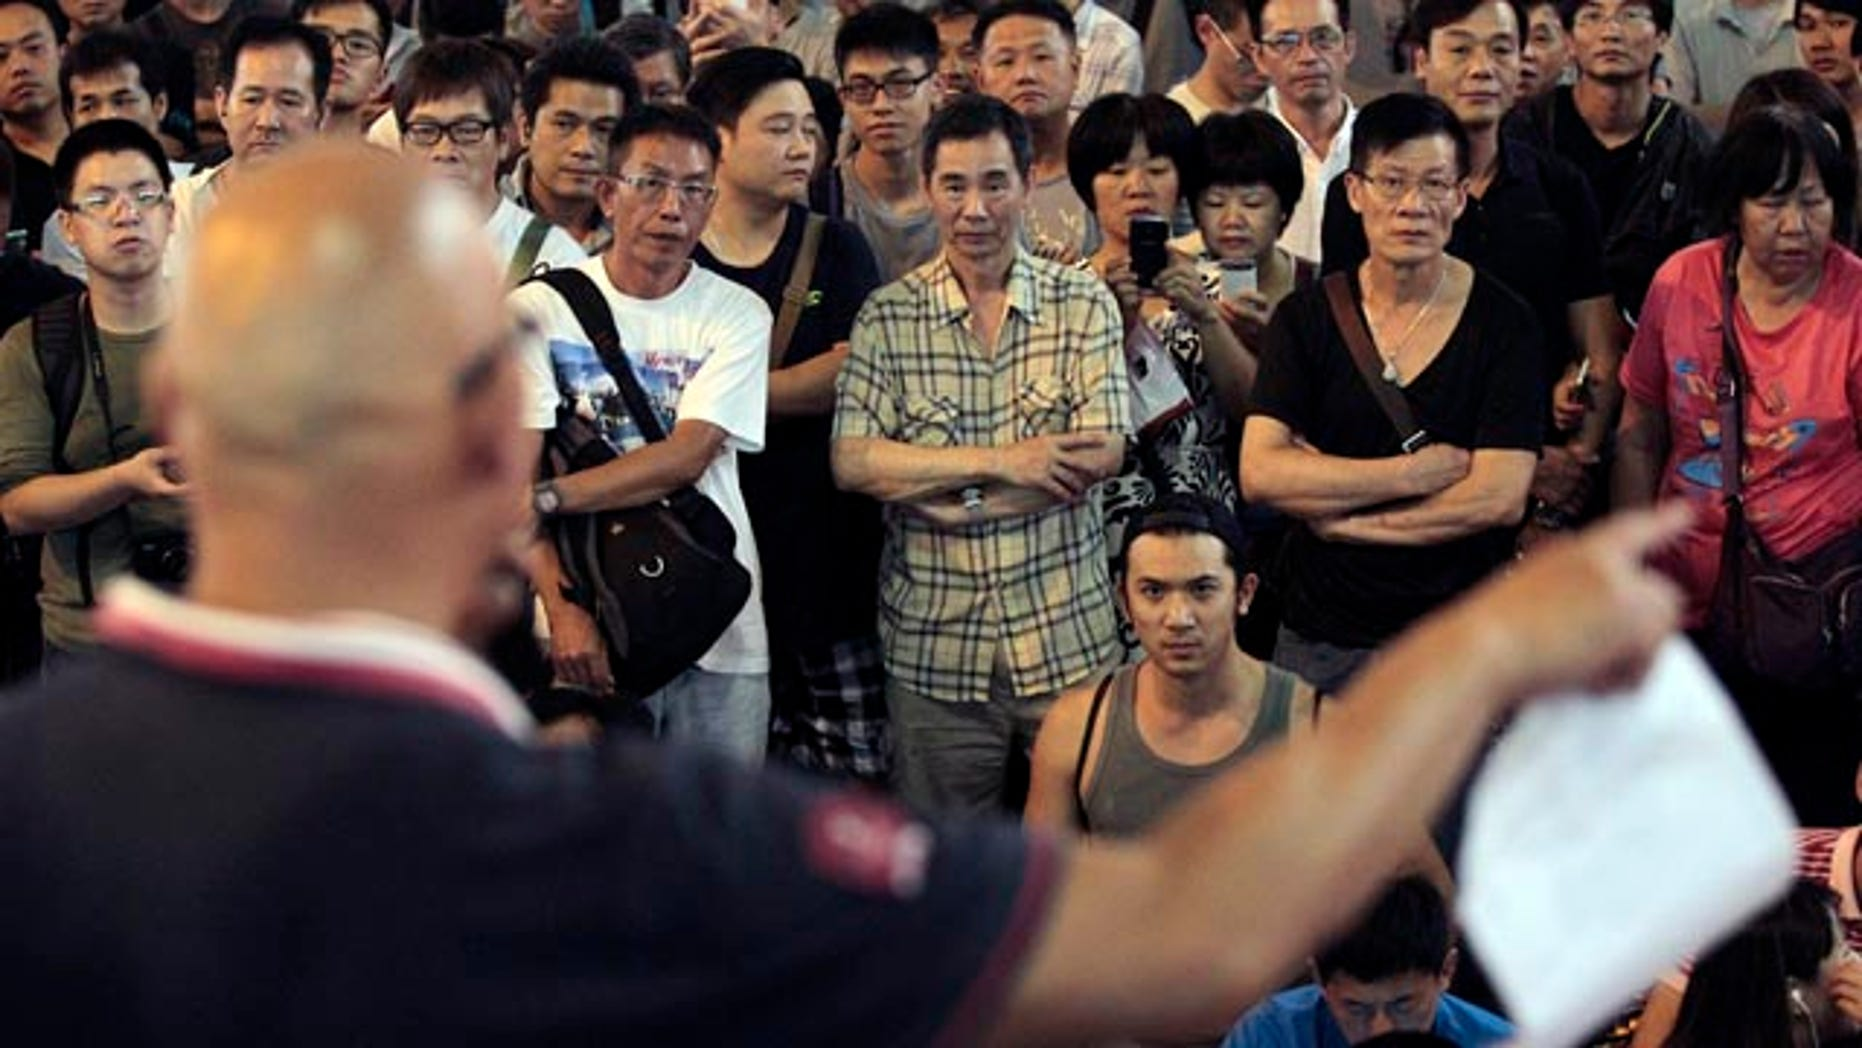 October 20, 2014: Passers by stop and listen to speeches by protest leaders at the pro-democracy protest site in the Mong Kok district of Hong Kong. (AP Photo/Wally Santana)